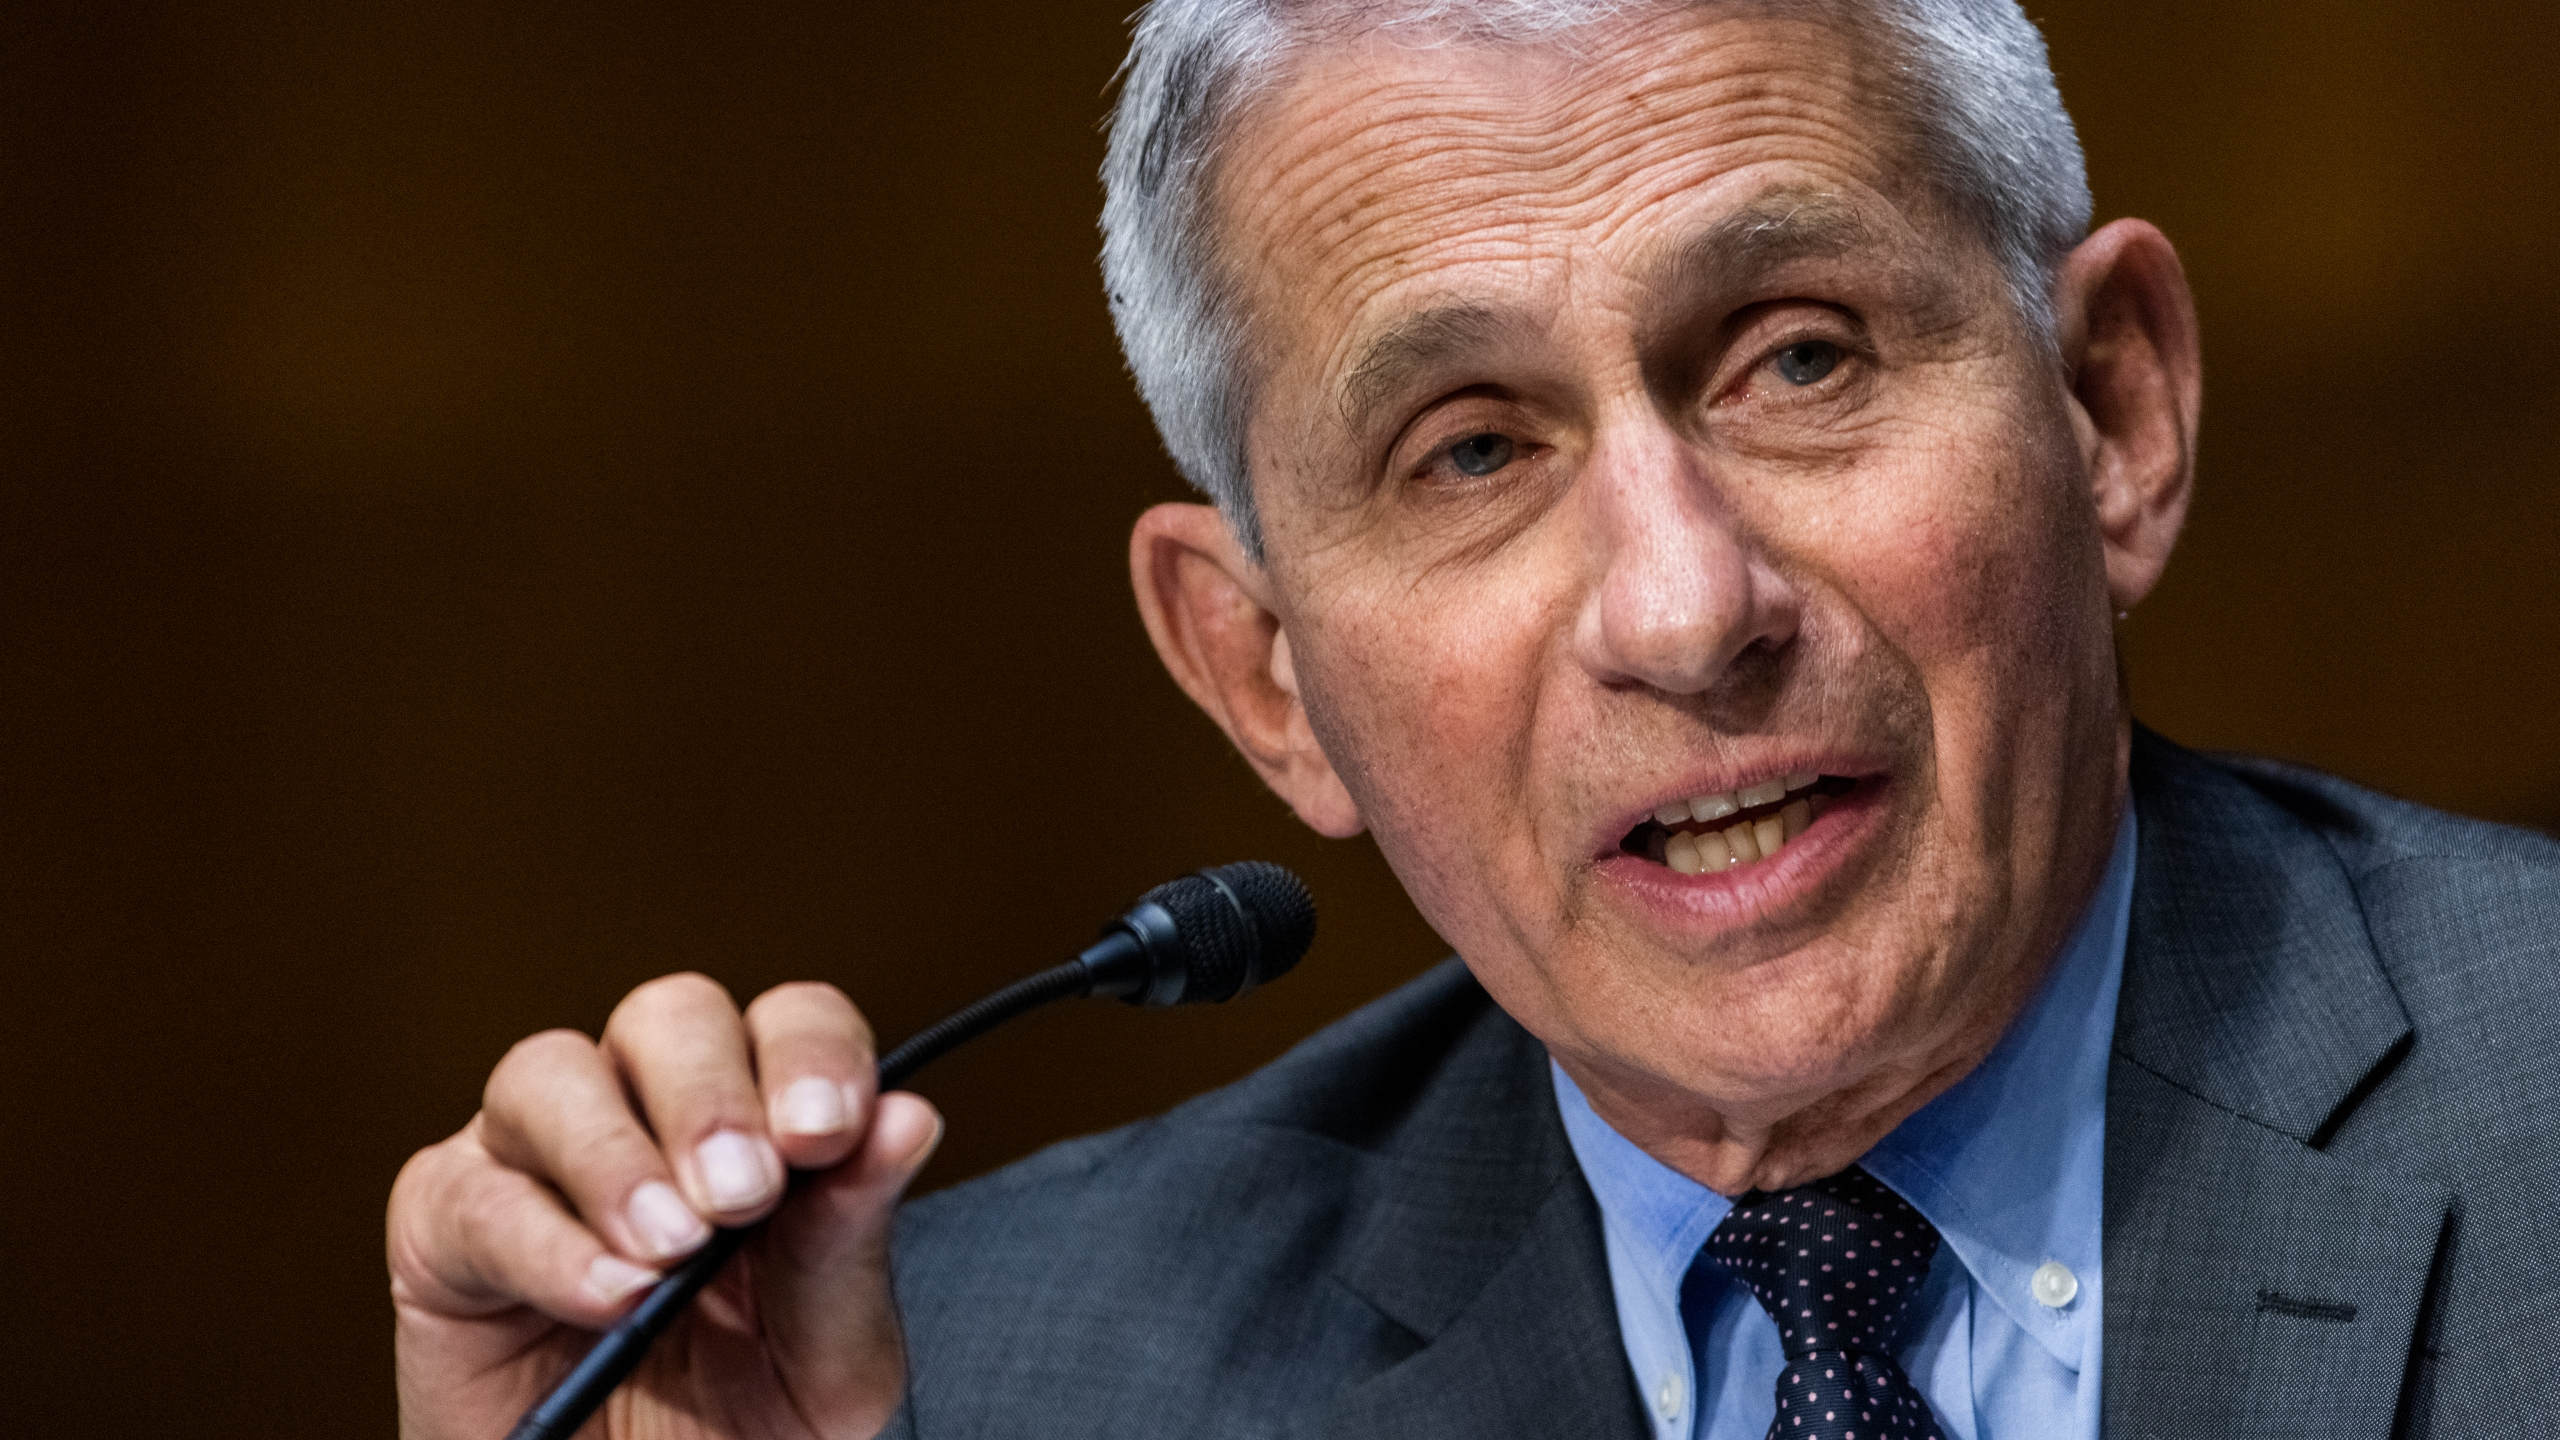 In this May 11, 2021, file photo, Dr. Anthony Fauci, director of the National Institute of Allergy and Infectious Diseases, speaks during hearing on Capitol Hill in Washington. The United States is devoting more than $3 billion to advance development of antiviral pills for COVID-19, according to an official briefed on the matter. The pills, which would be used to minimize symptoms after infection, are in development and could begin arriving by year's end, pending the completion of clinical trials. (Jim Lo Scalzo/Pool Photo via AP, File)